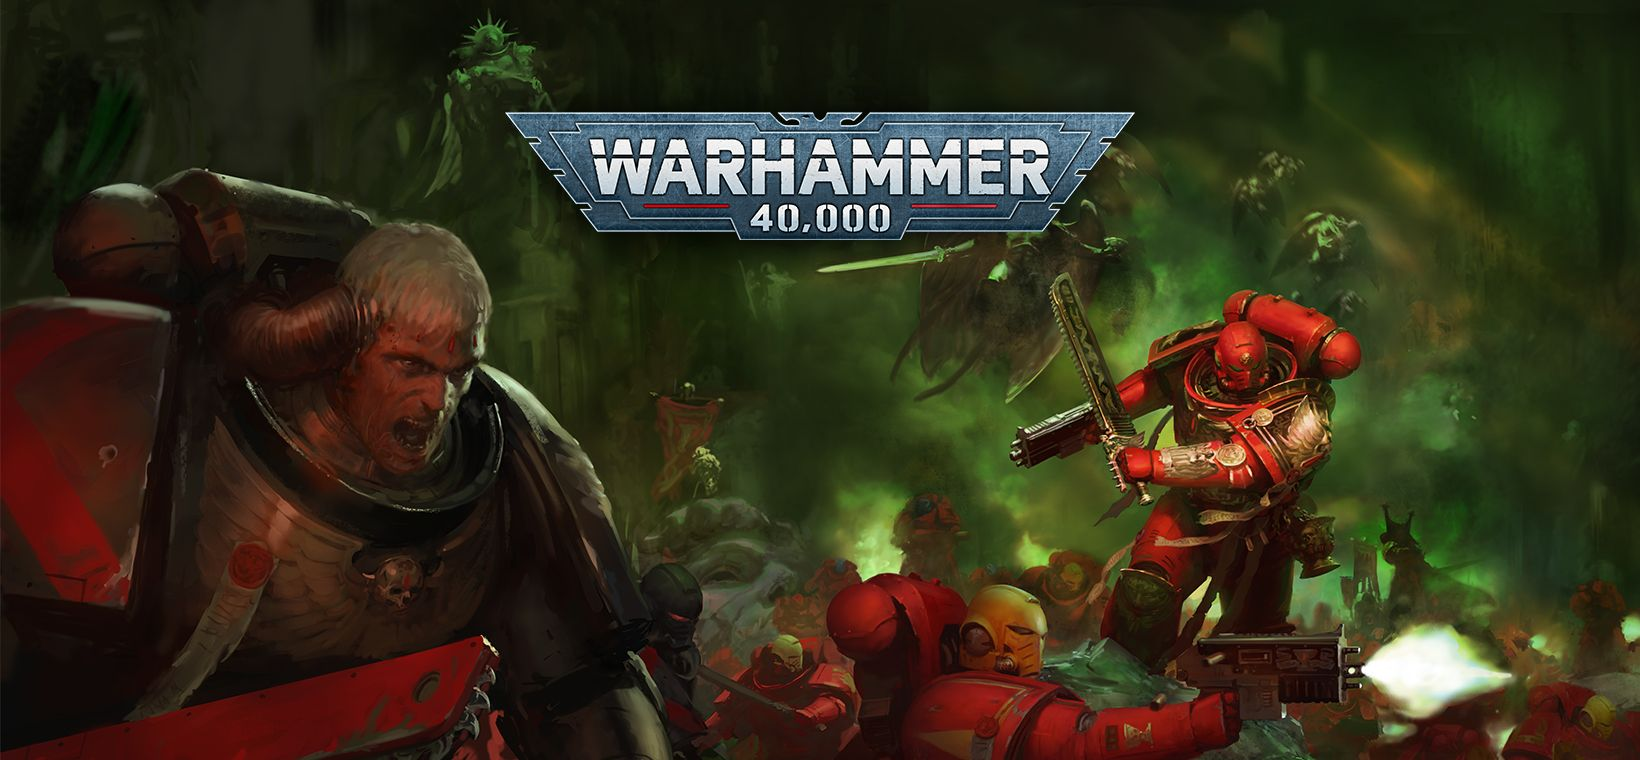 Blood Angels 9th Edition Release